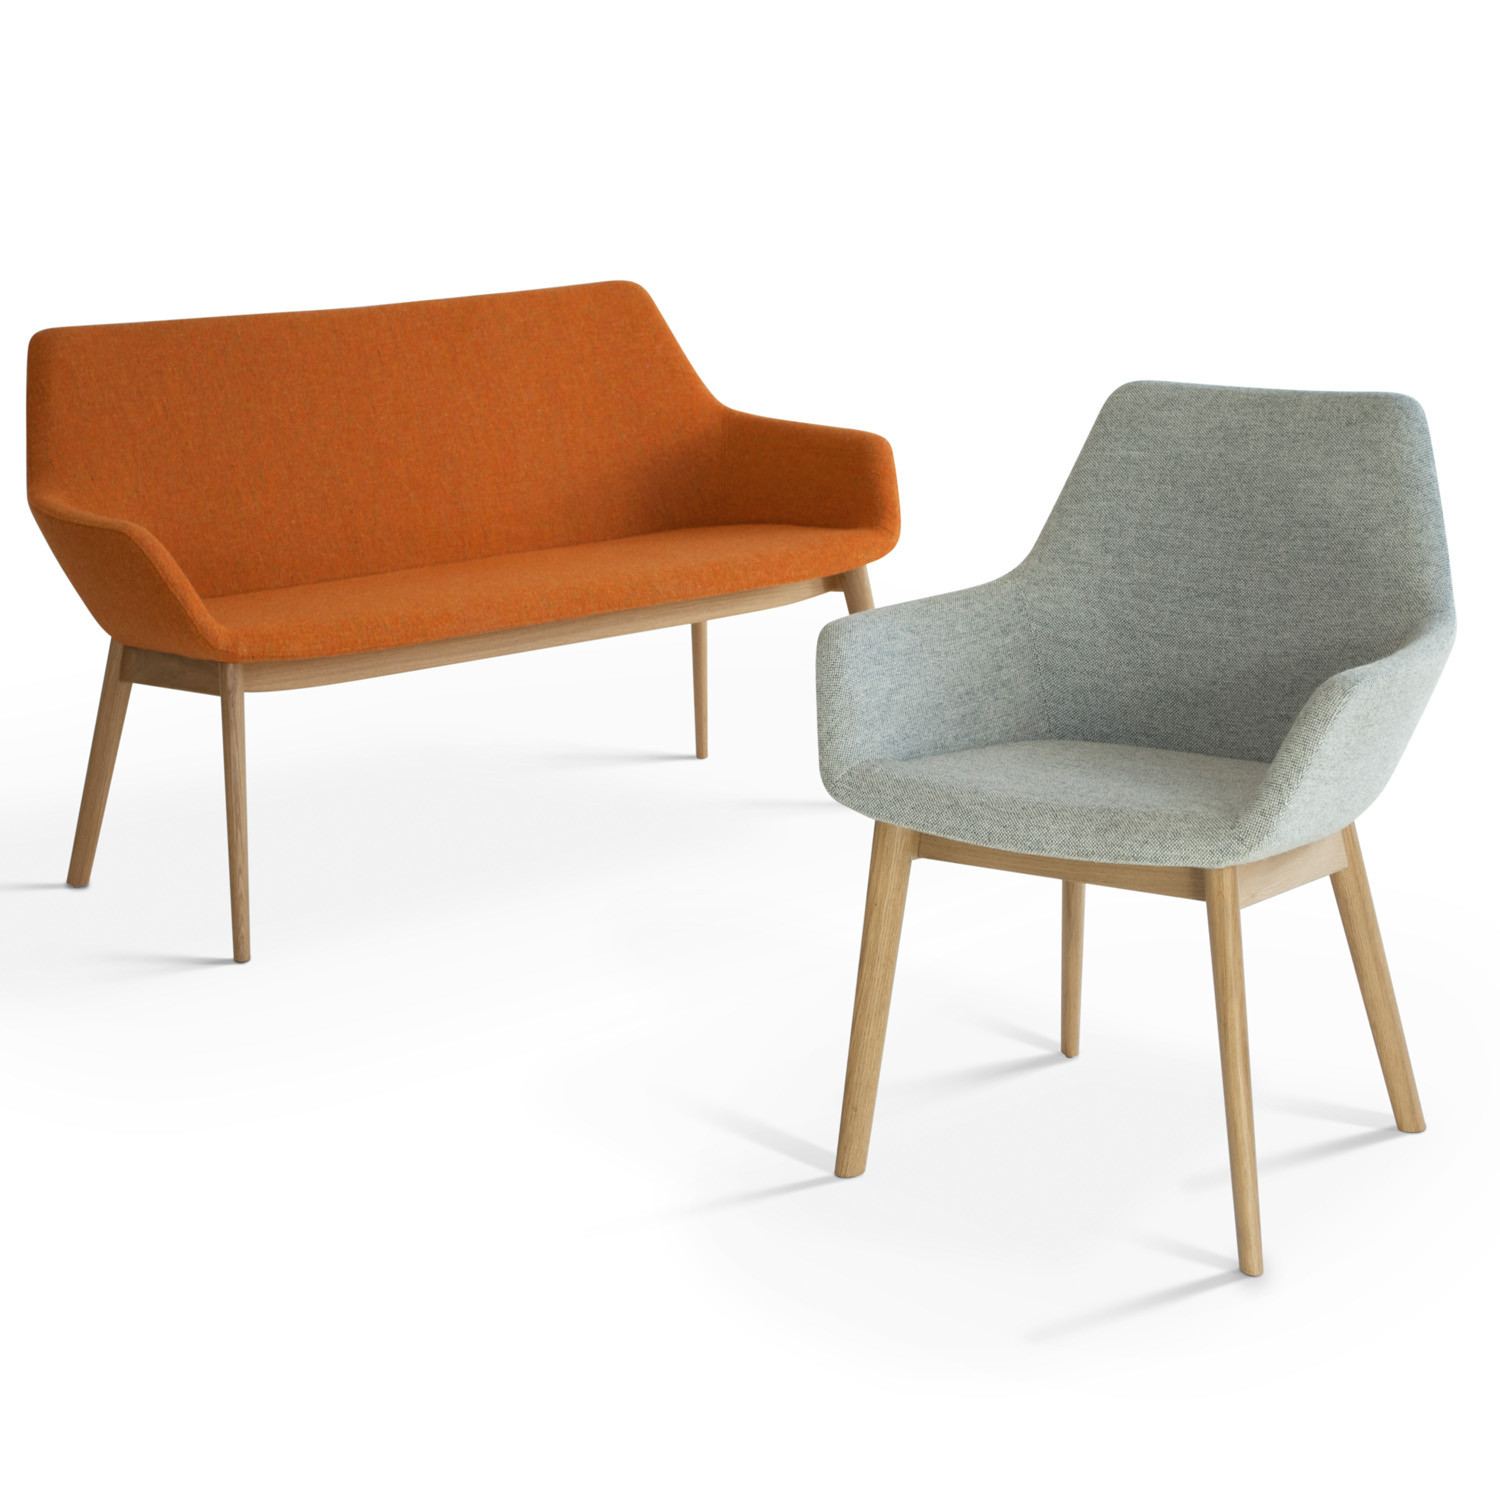 Hm86 Compact Seating